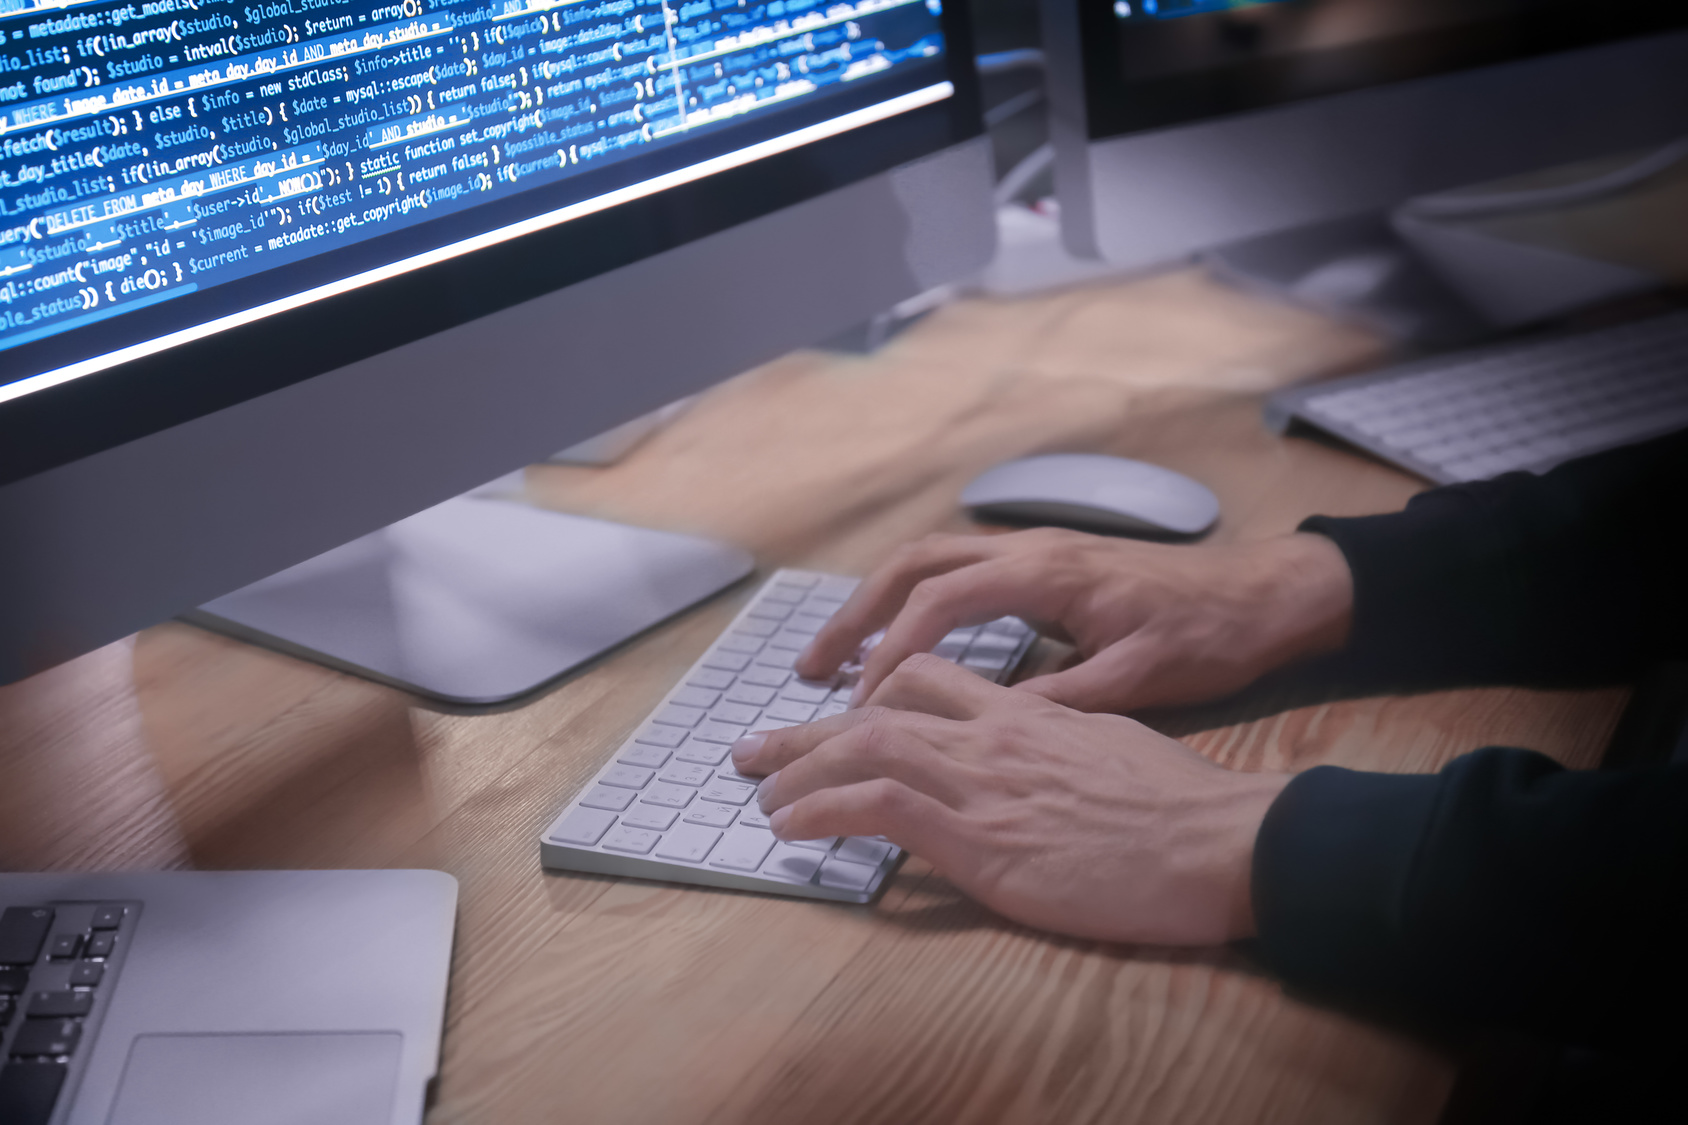 Insider Threats - Criminal & malicious insider threat costs businesses an average of $607,745 per incident - Ponemon Institute Study